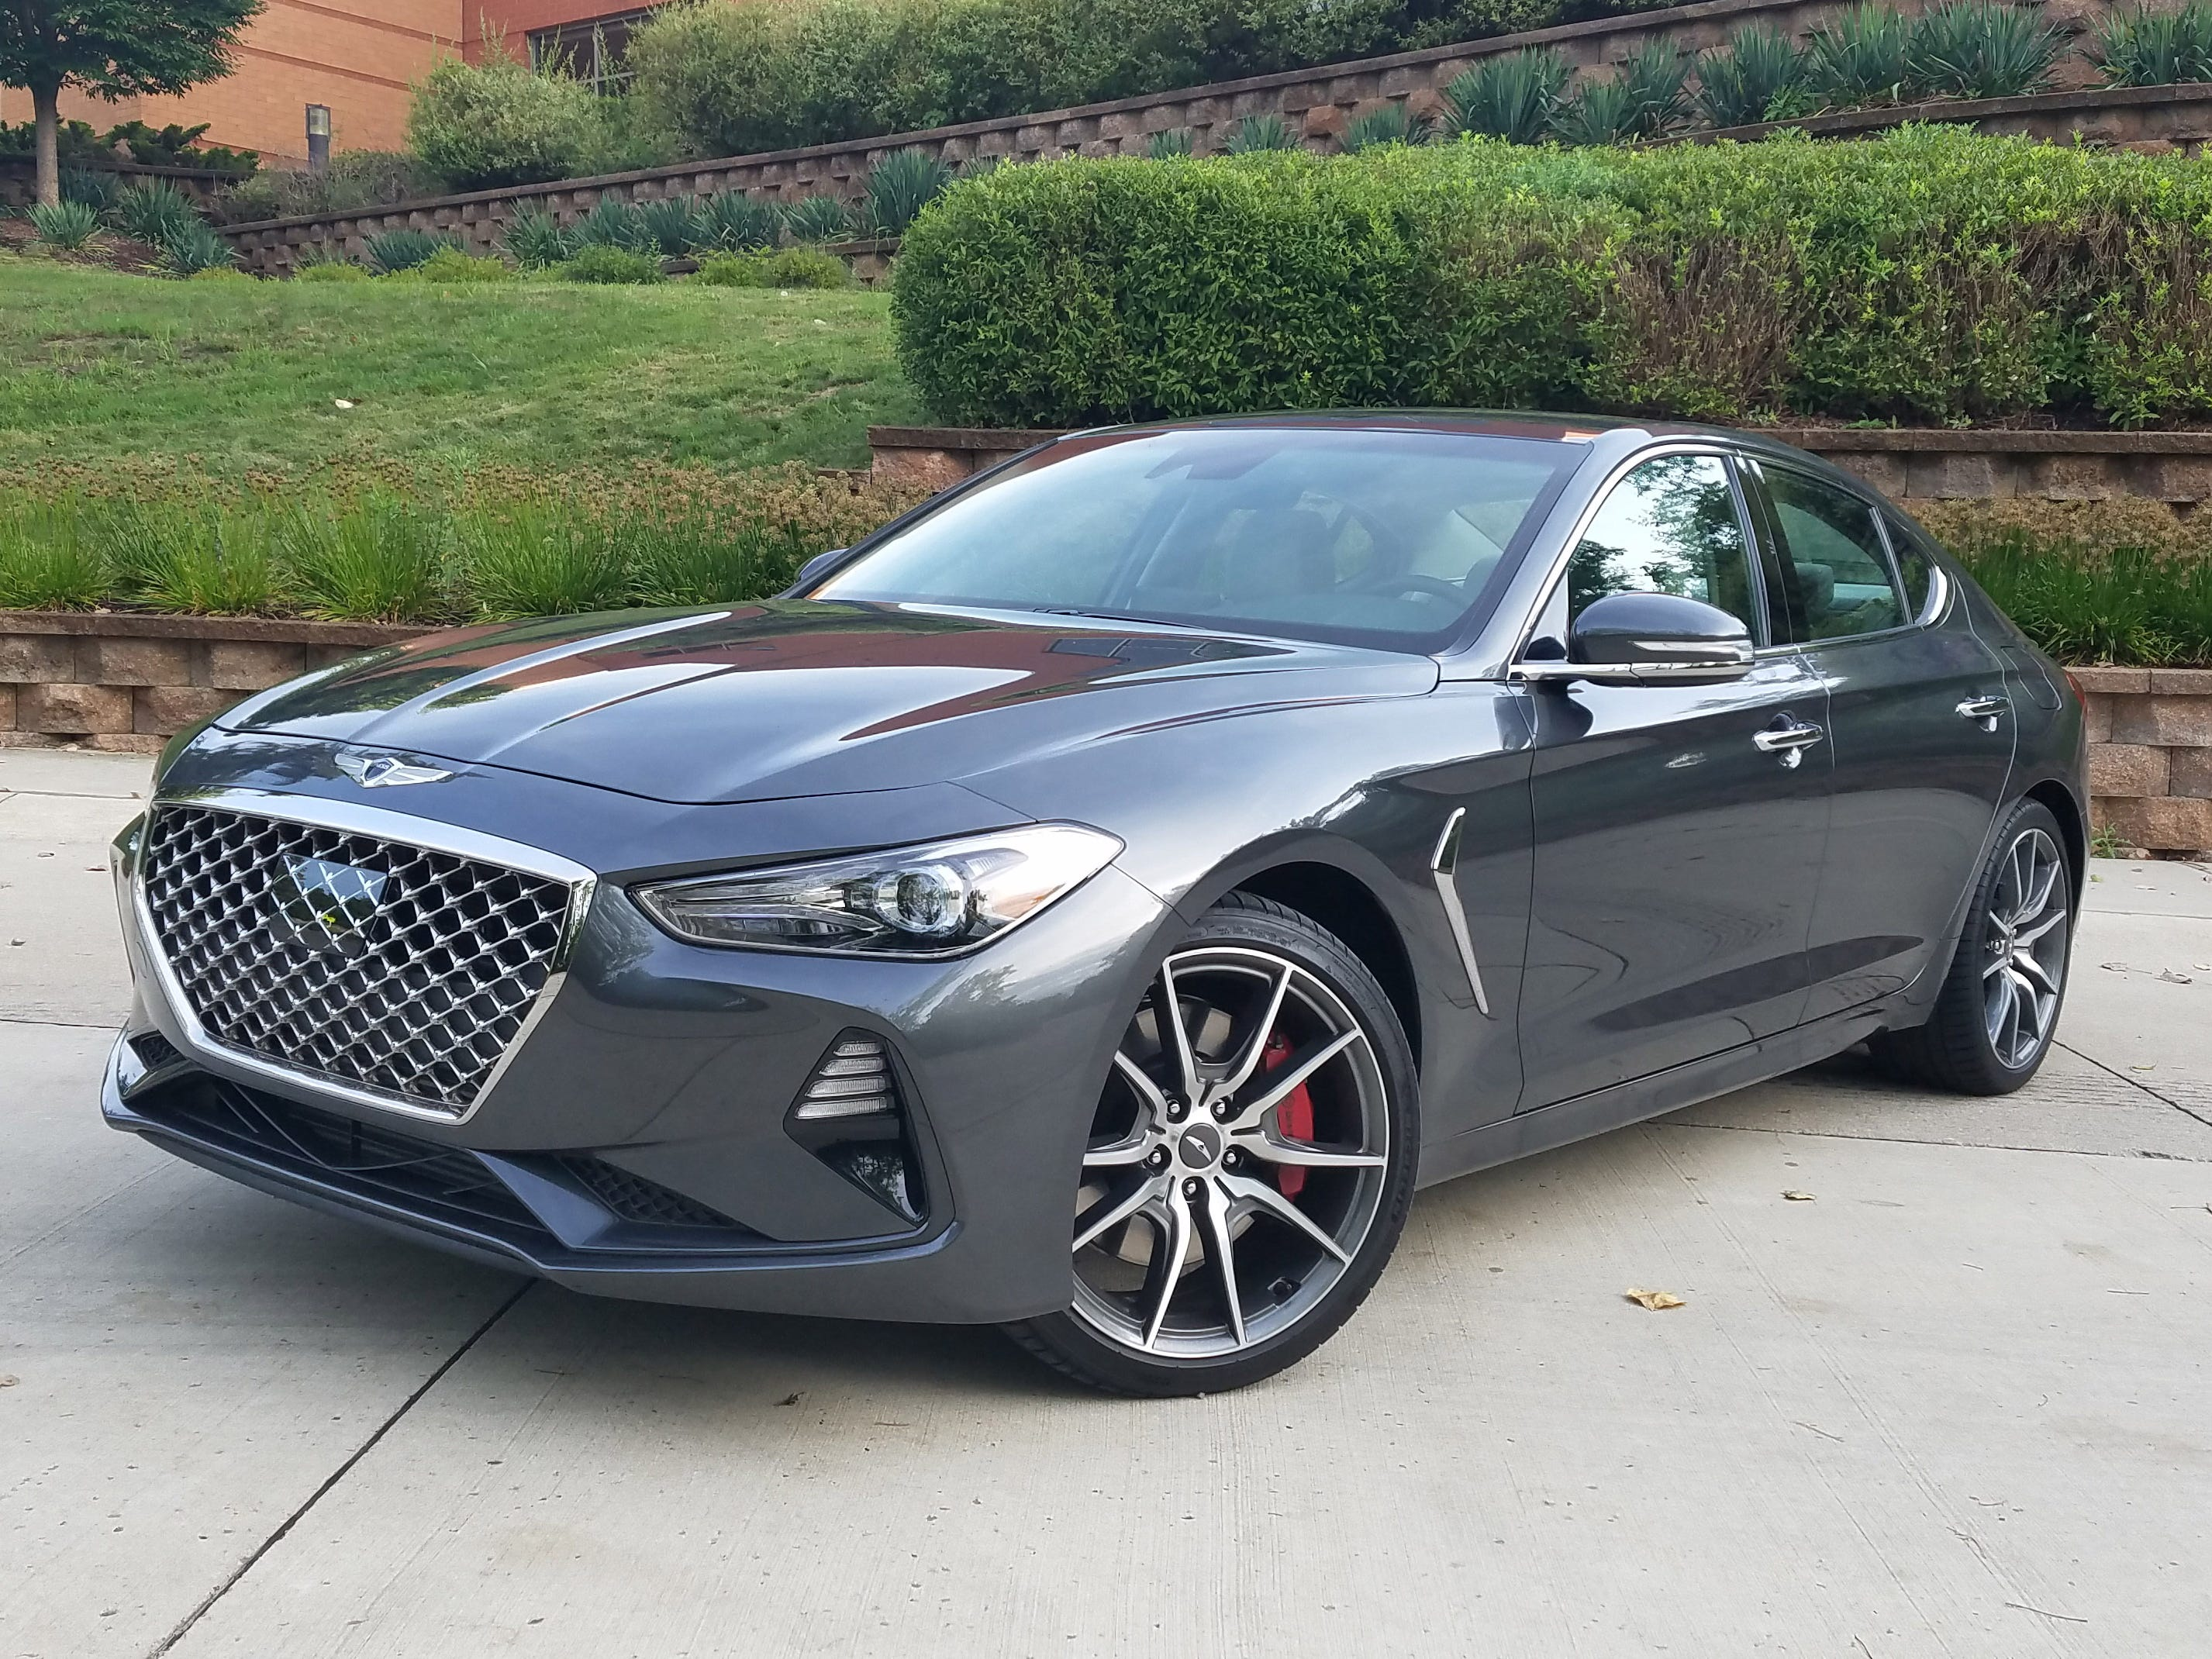 The winners have been announced for the 2019 North American Car, Utility and Truck of the Year.  The  Car of the Year is the 2019 Genesis G70, seen in the Sport model with a manual transmission.